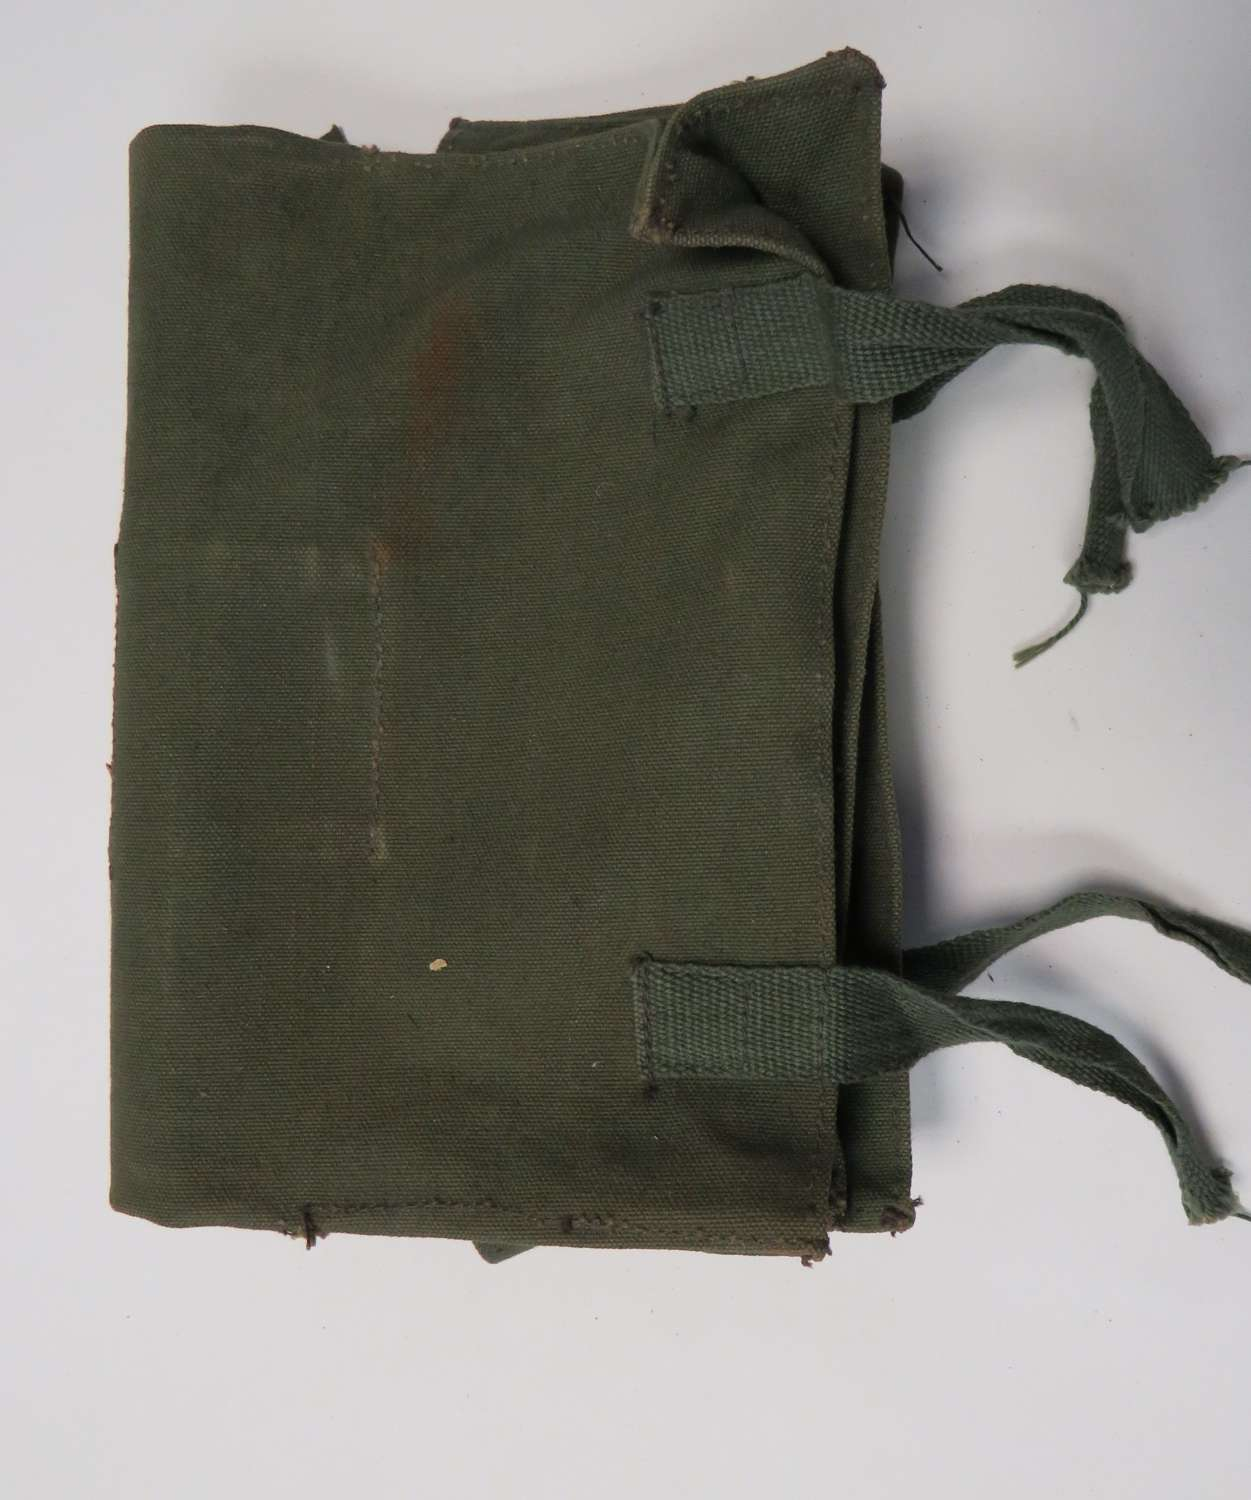 1945 Dated Tropical Army Housewife Bag